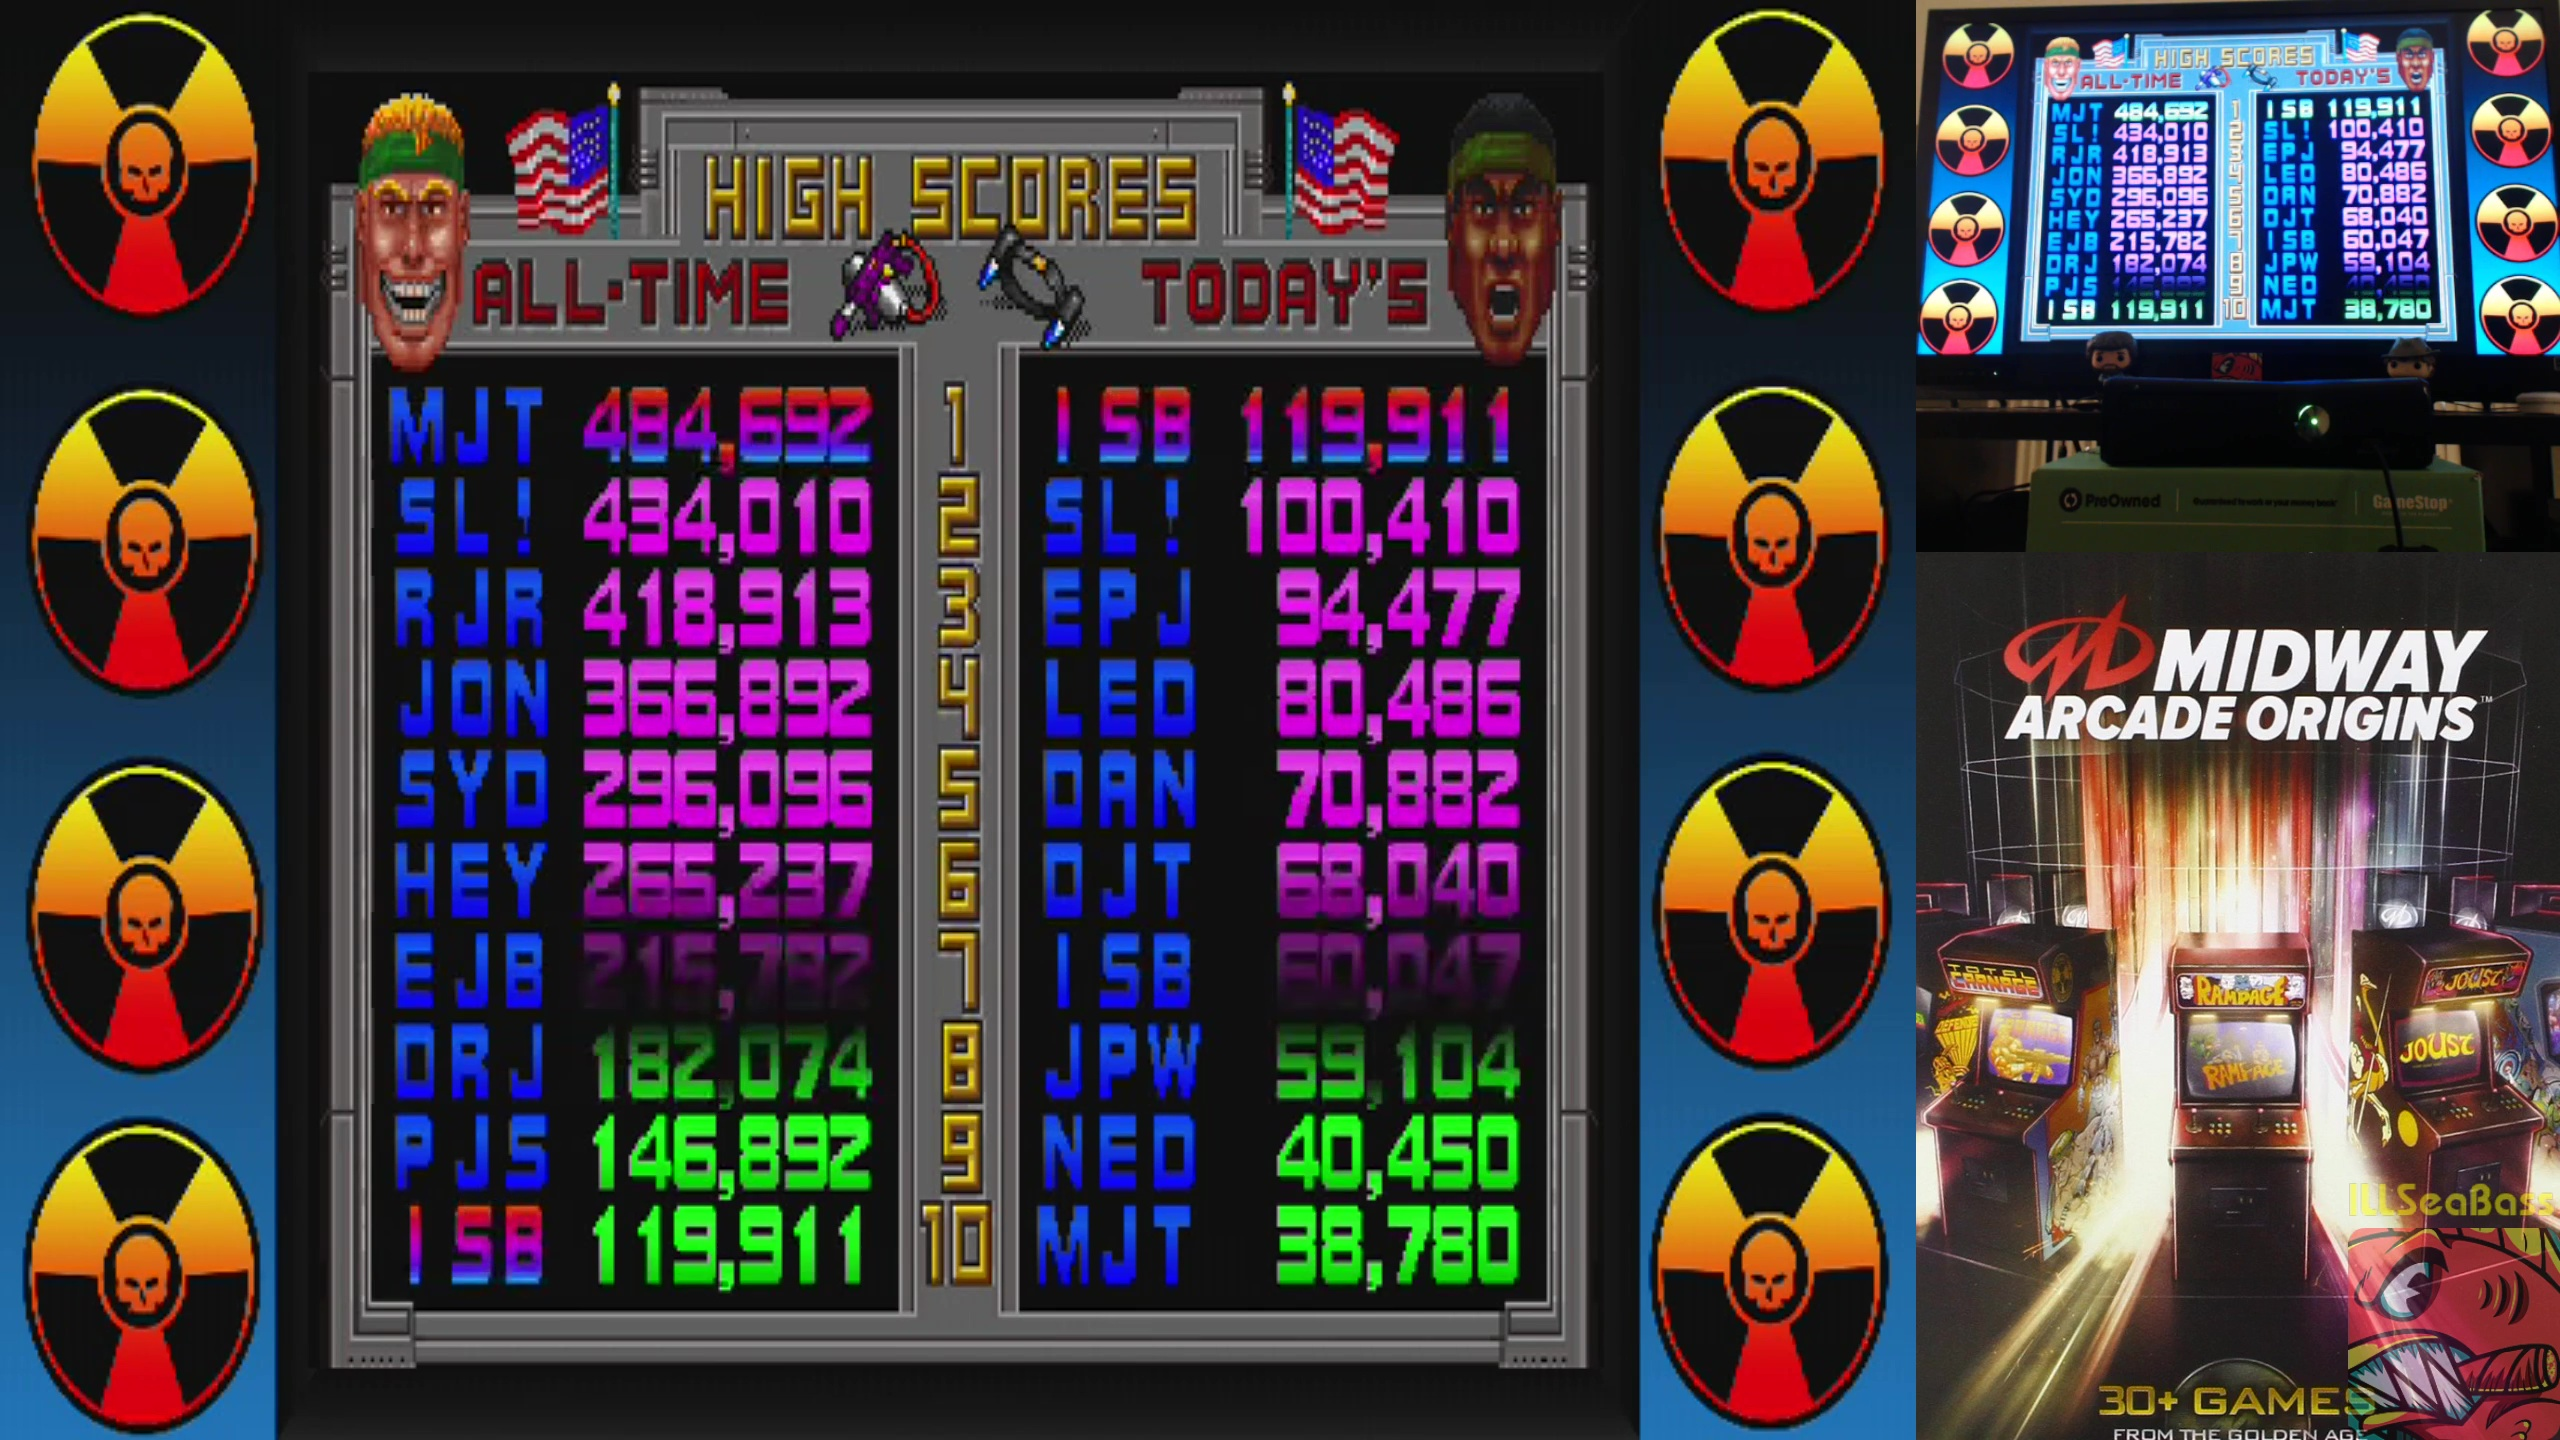 ILLSeaBass: Midway Arcade Origins: Total Carnage (Xbox 360) 119,911 points on 2018-05-28 22:54:47